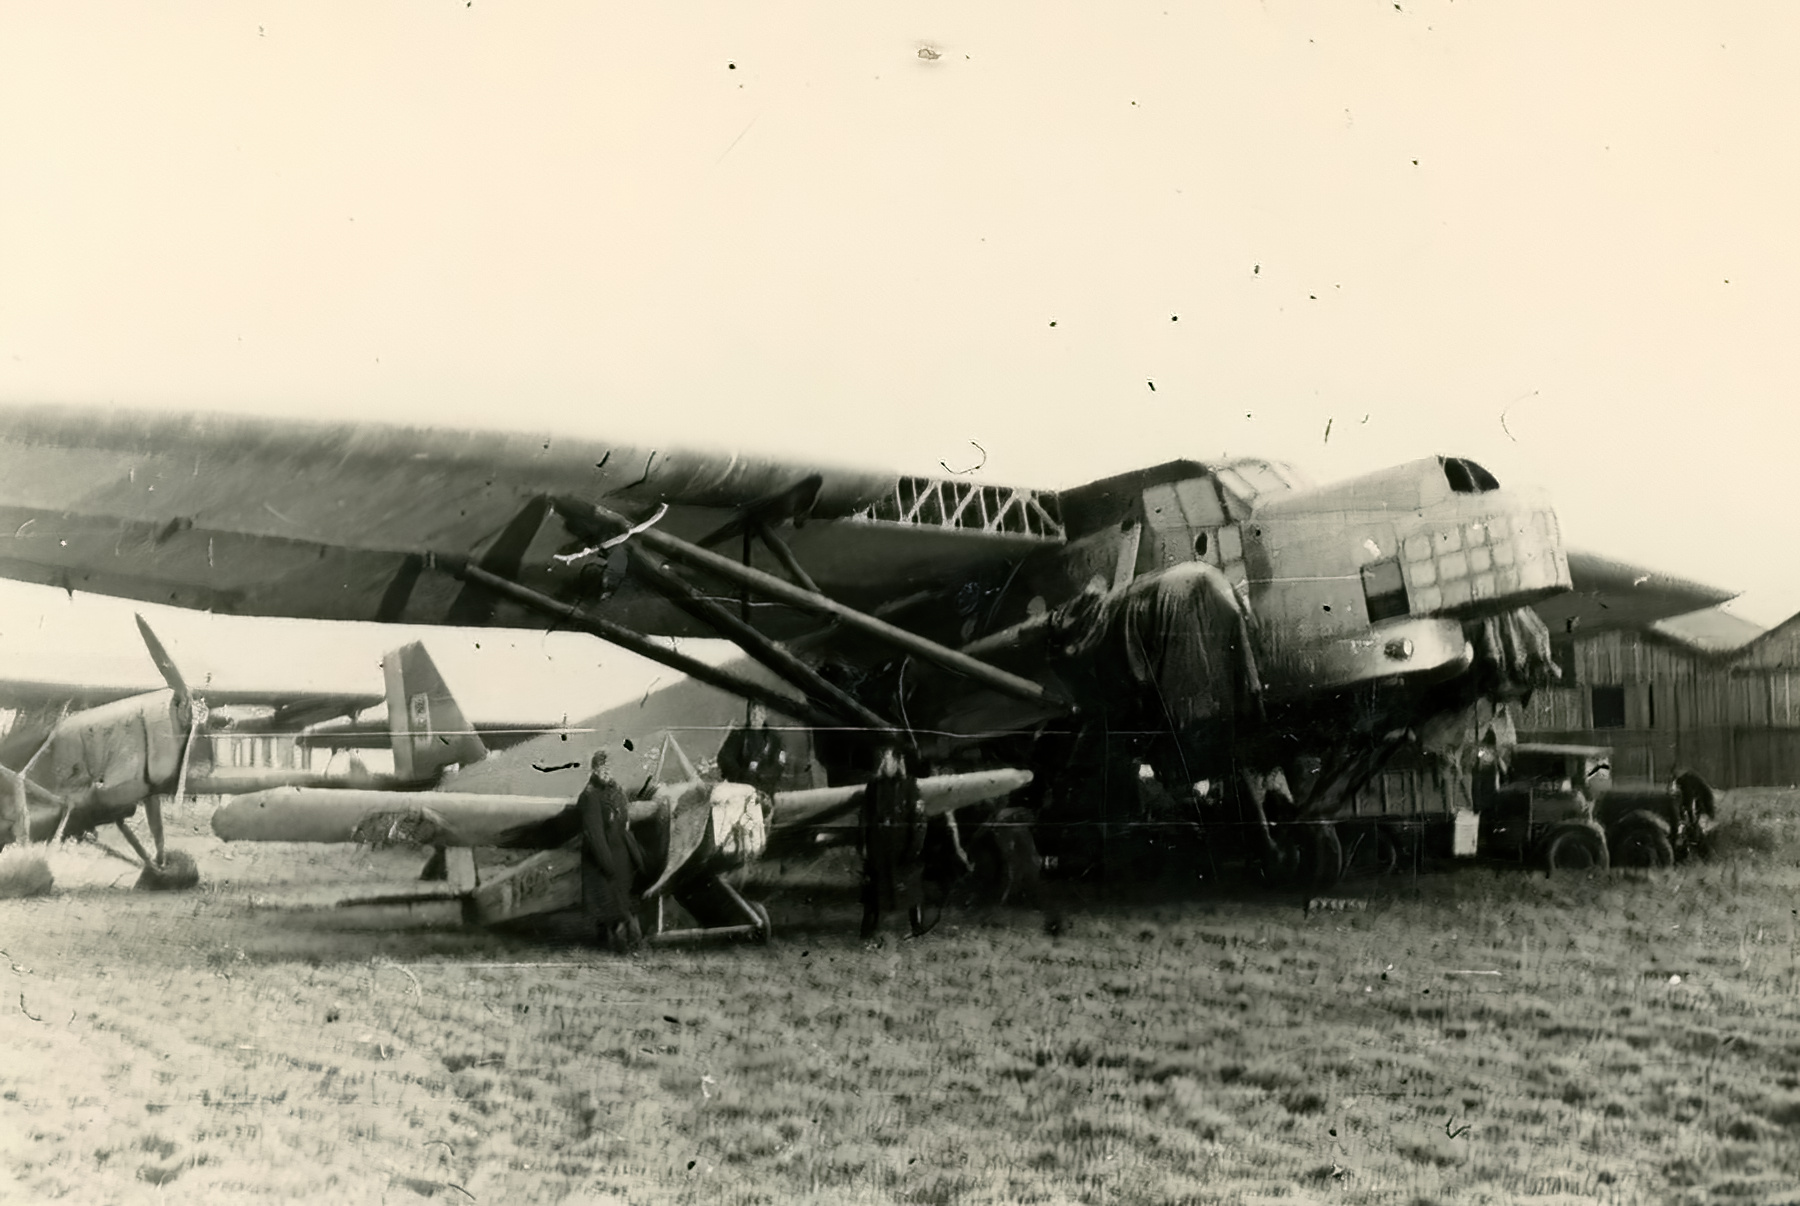 French Airforce Farman F222 destroyed whilst on the ground battle of France May Jun 1940 ebay 01